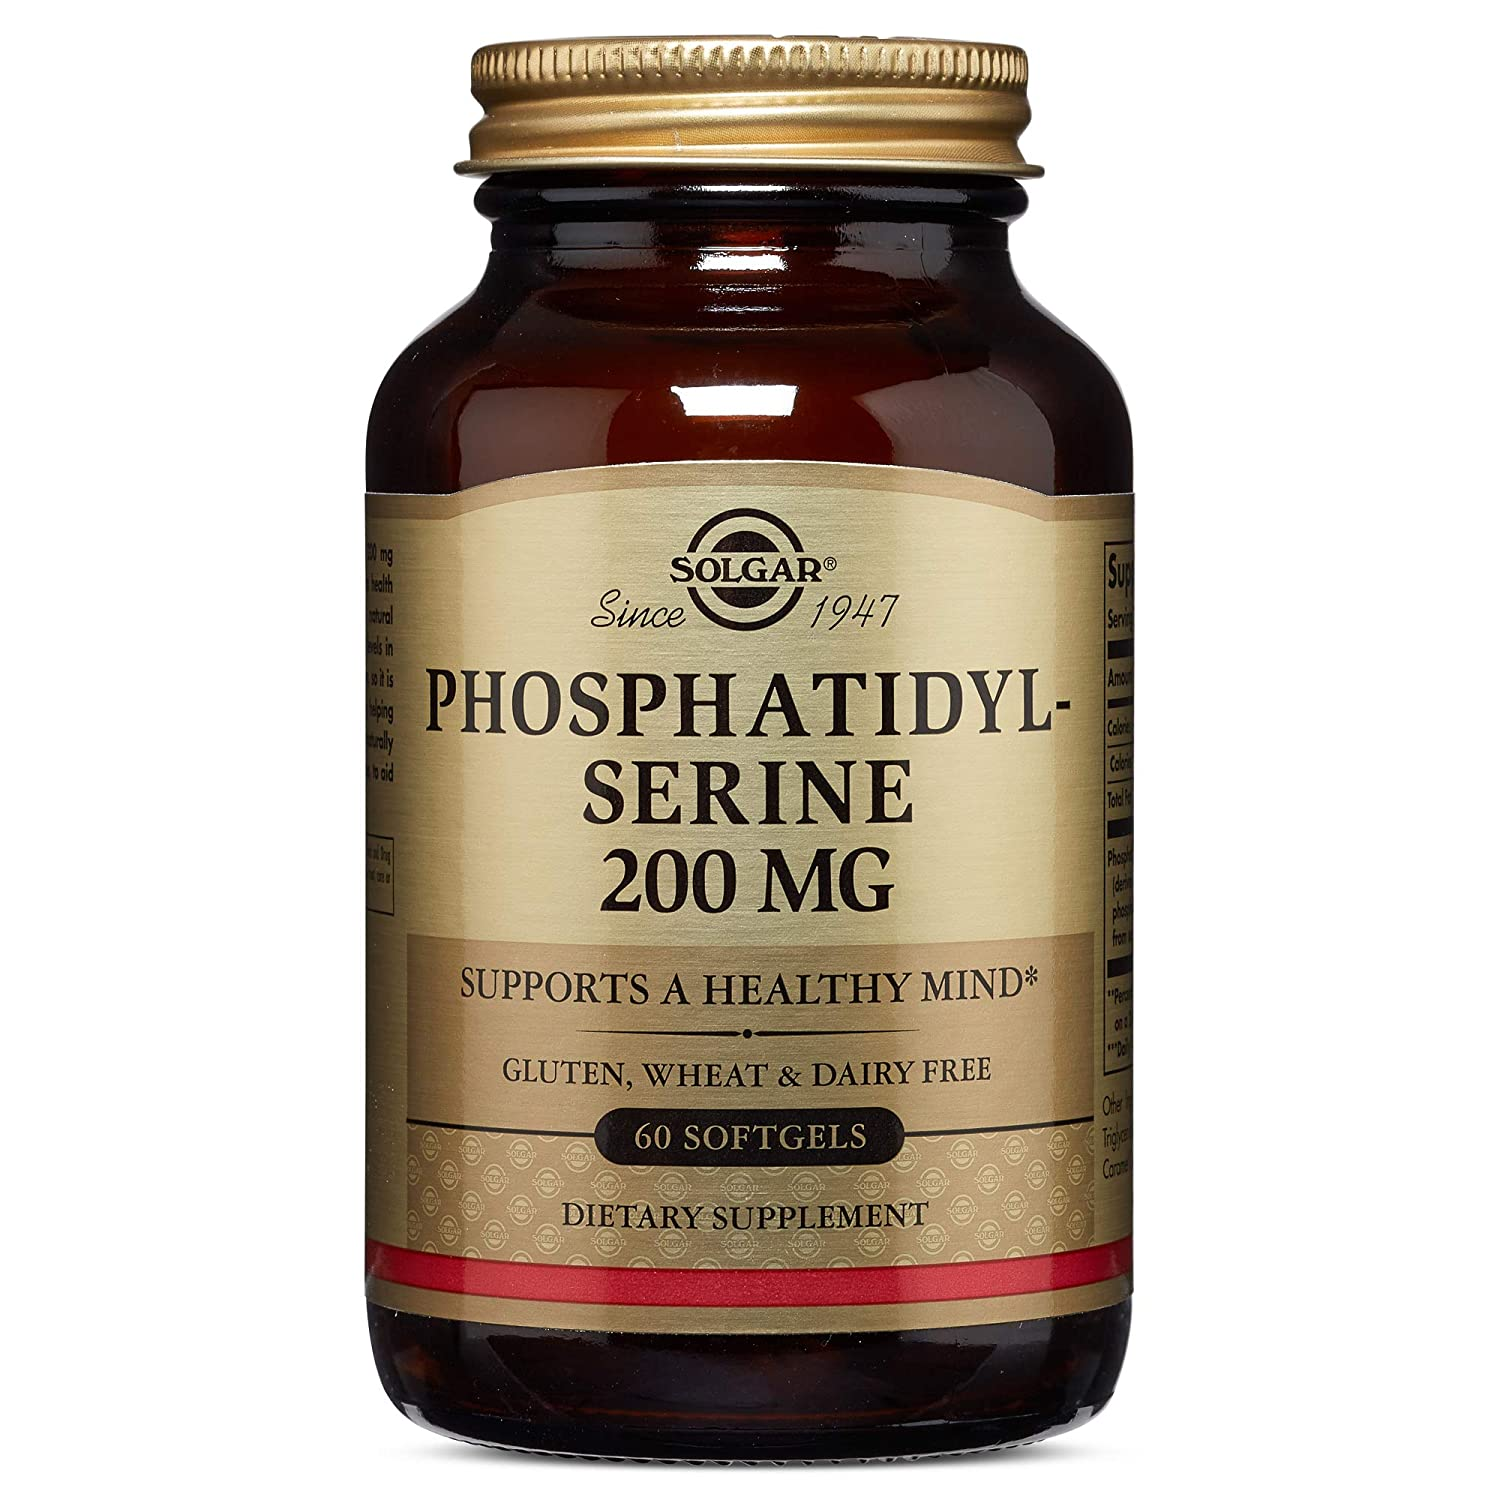 Solgar Phosphatidylserine 200 mg, 60 Softgels